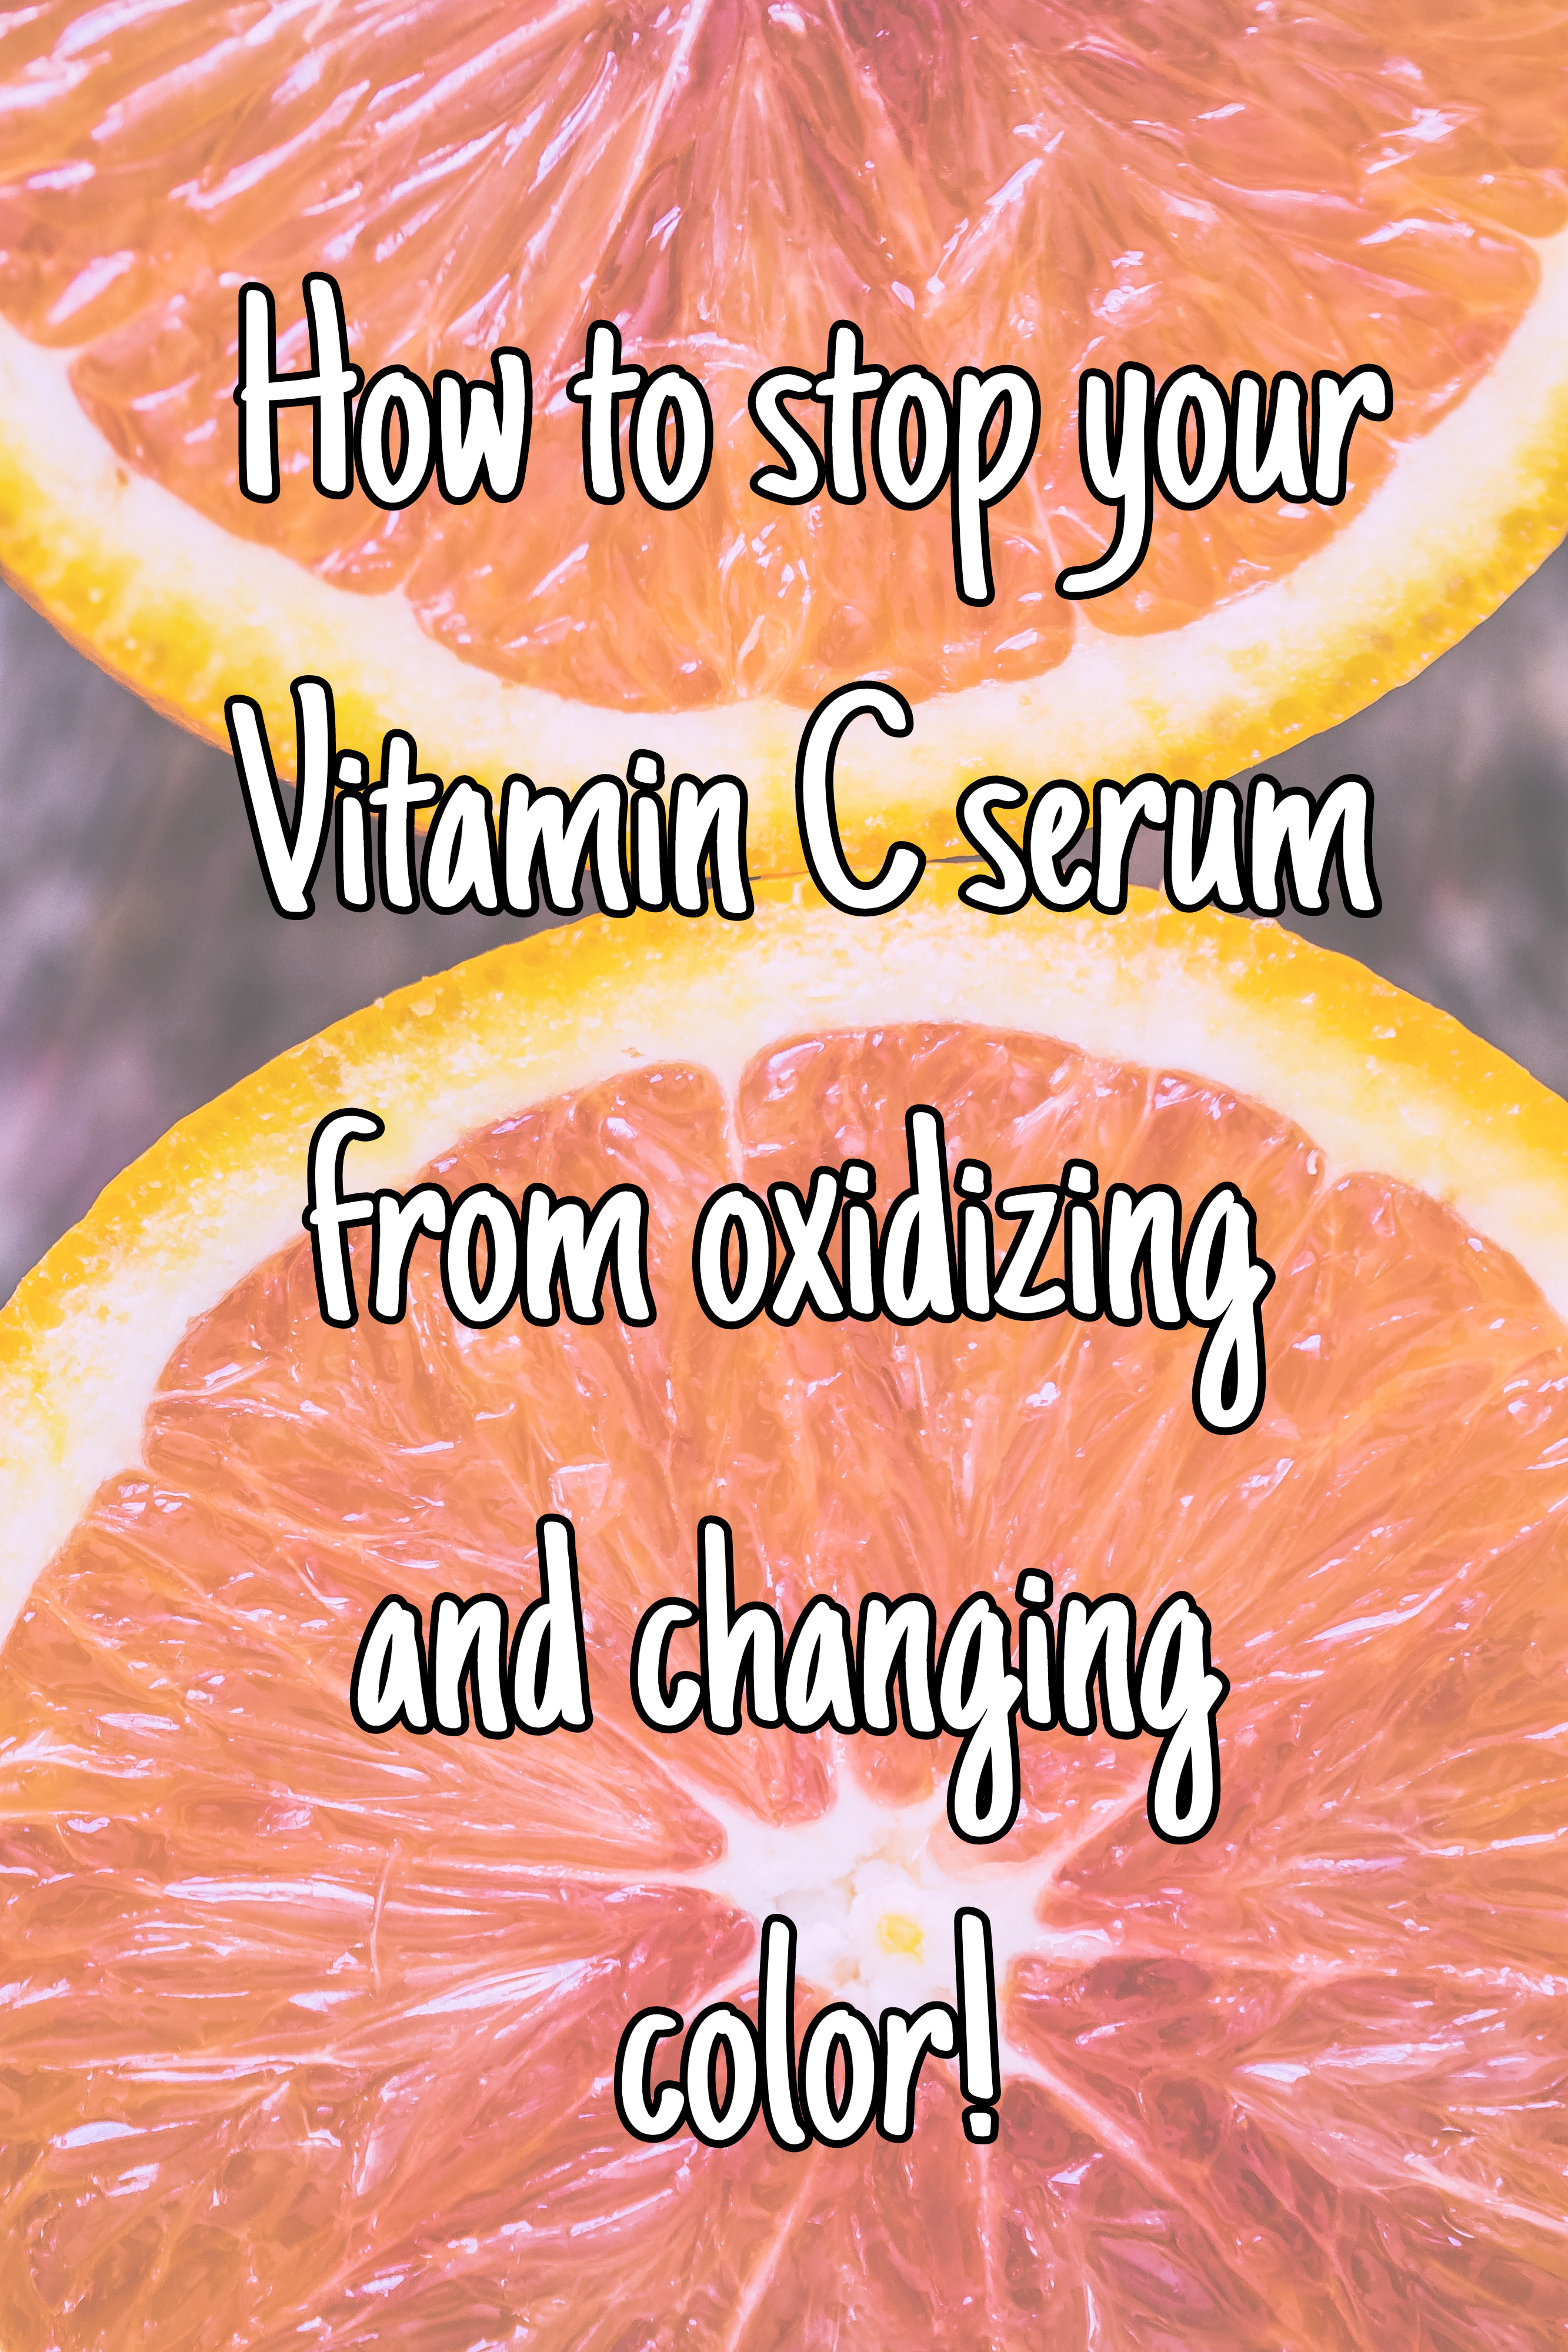 Stop Vitamin C serum from oxidizing!